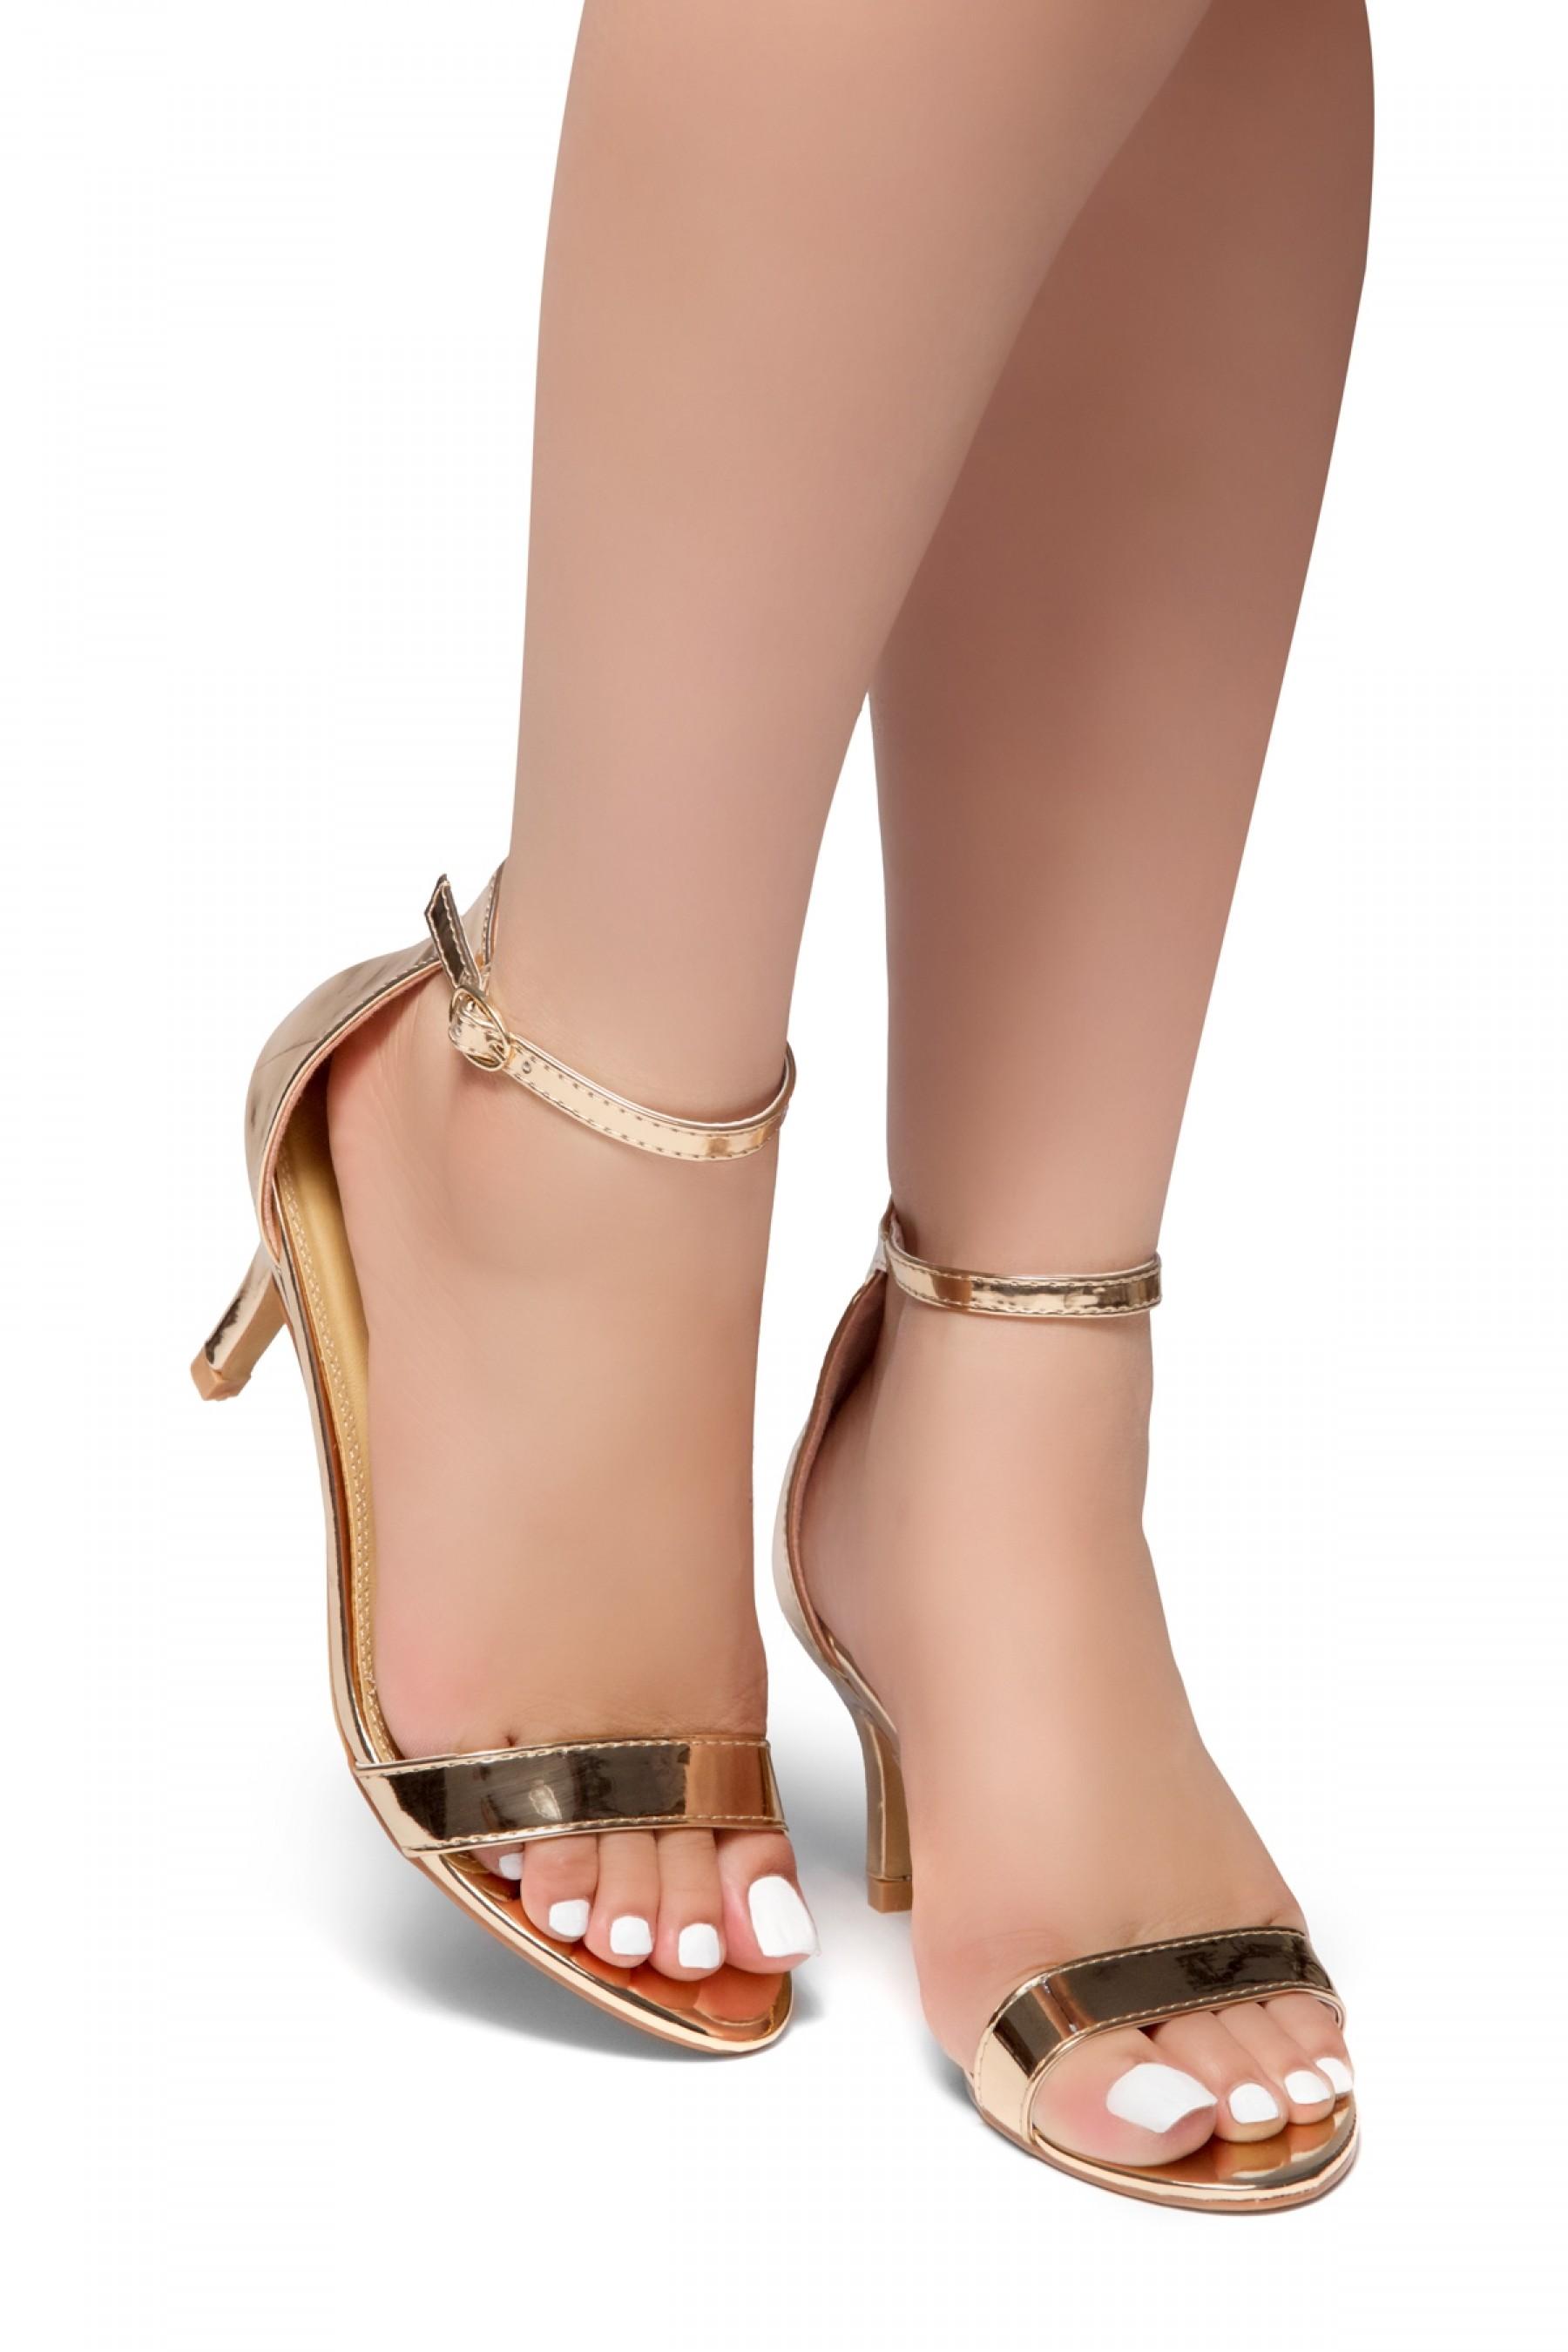 HerStyle Pure Love-Stiletto Heel, Ankle Strap Sandals (RoseGold)